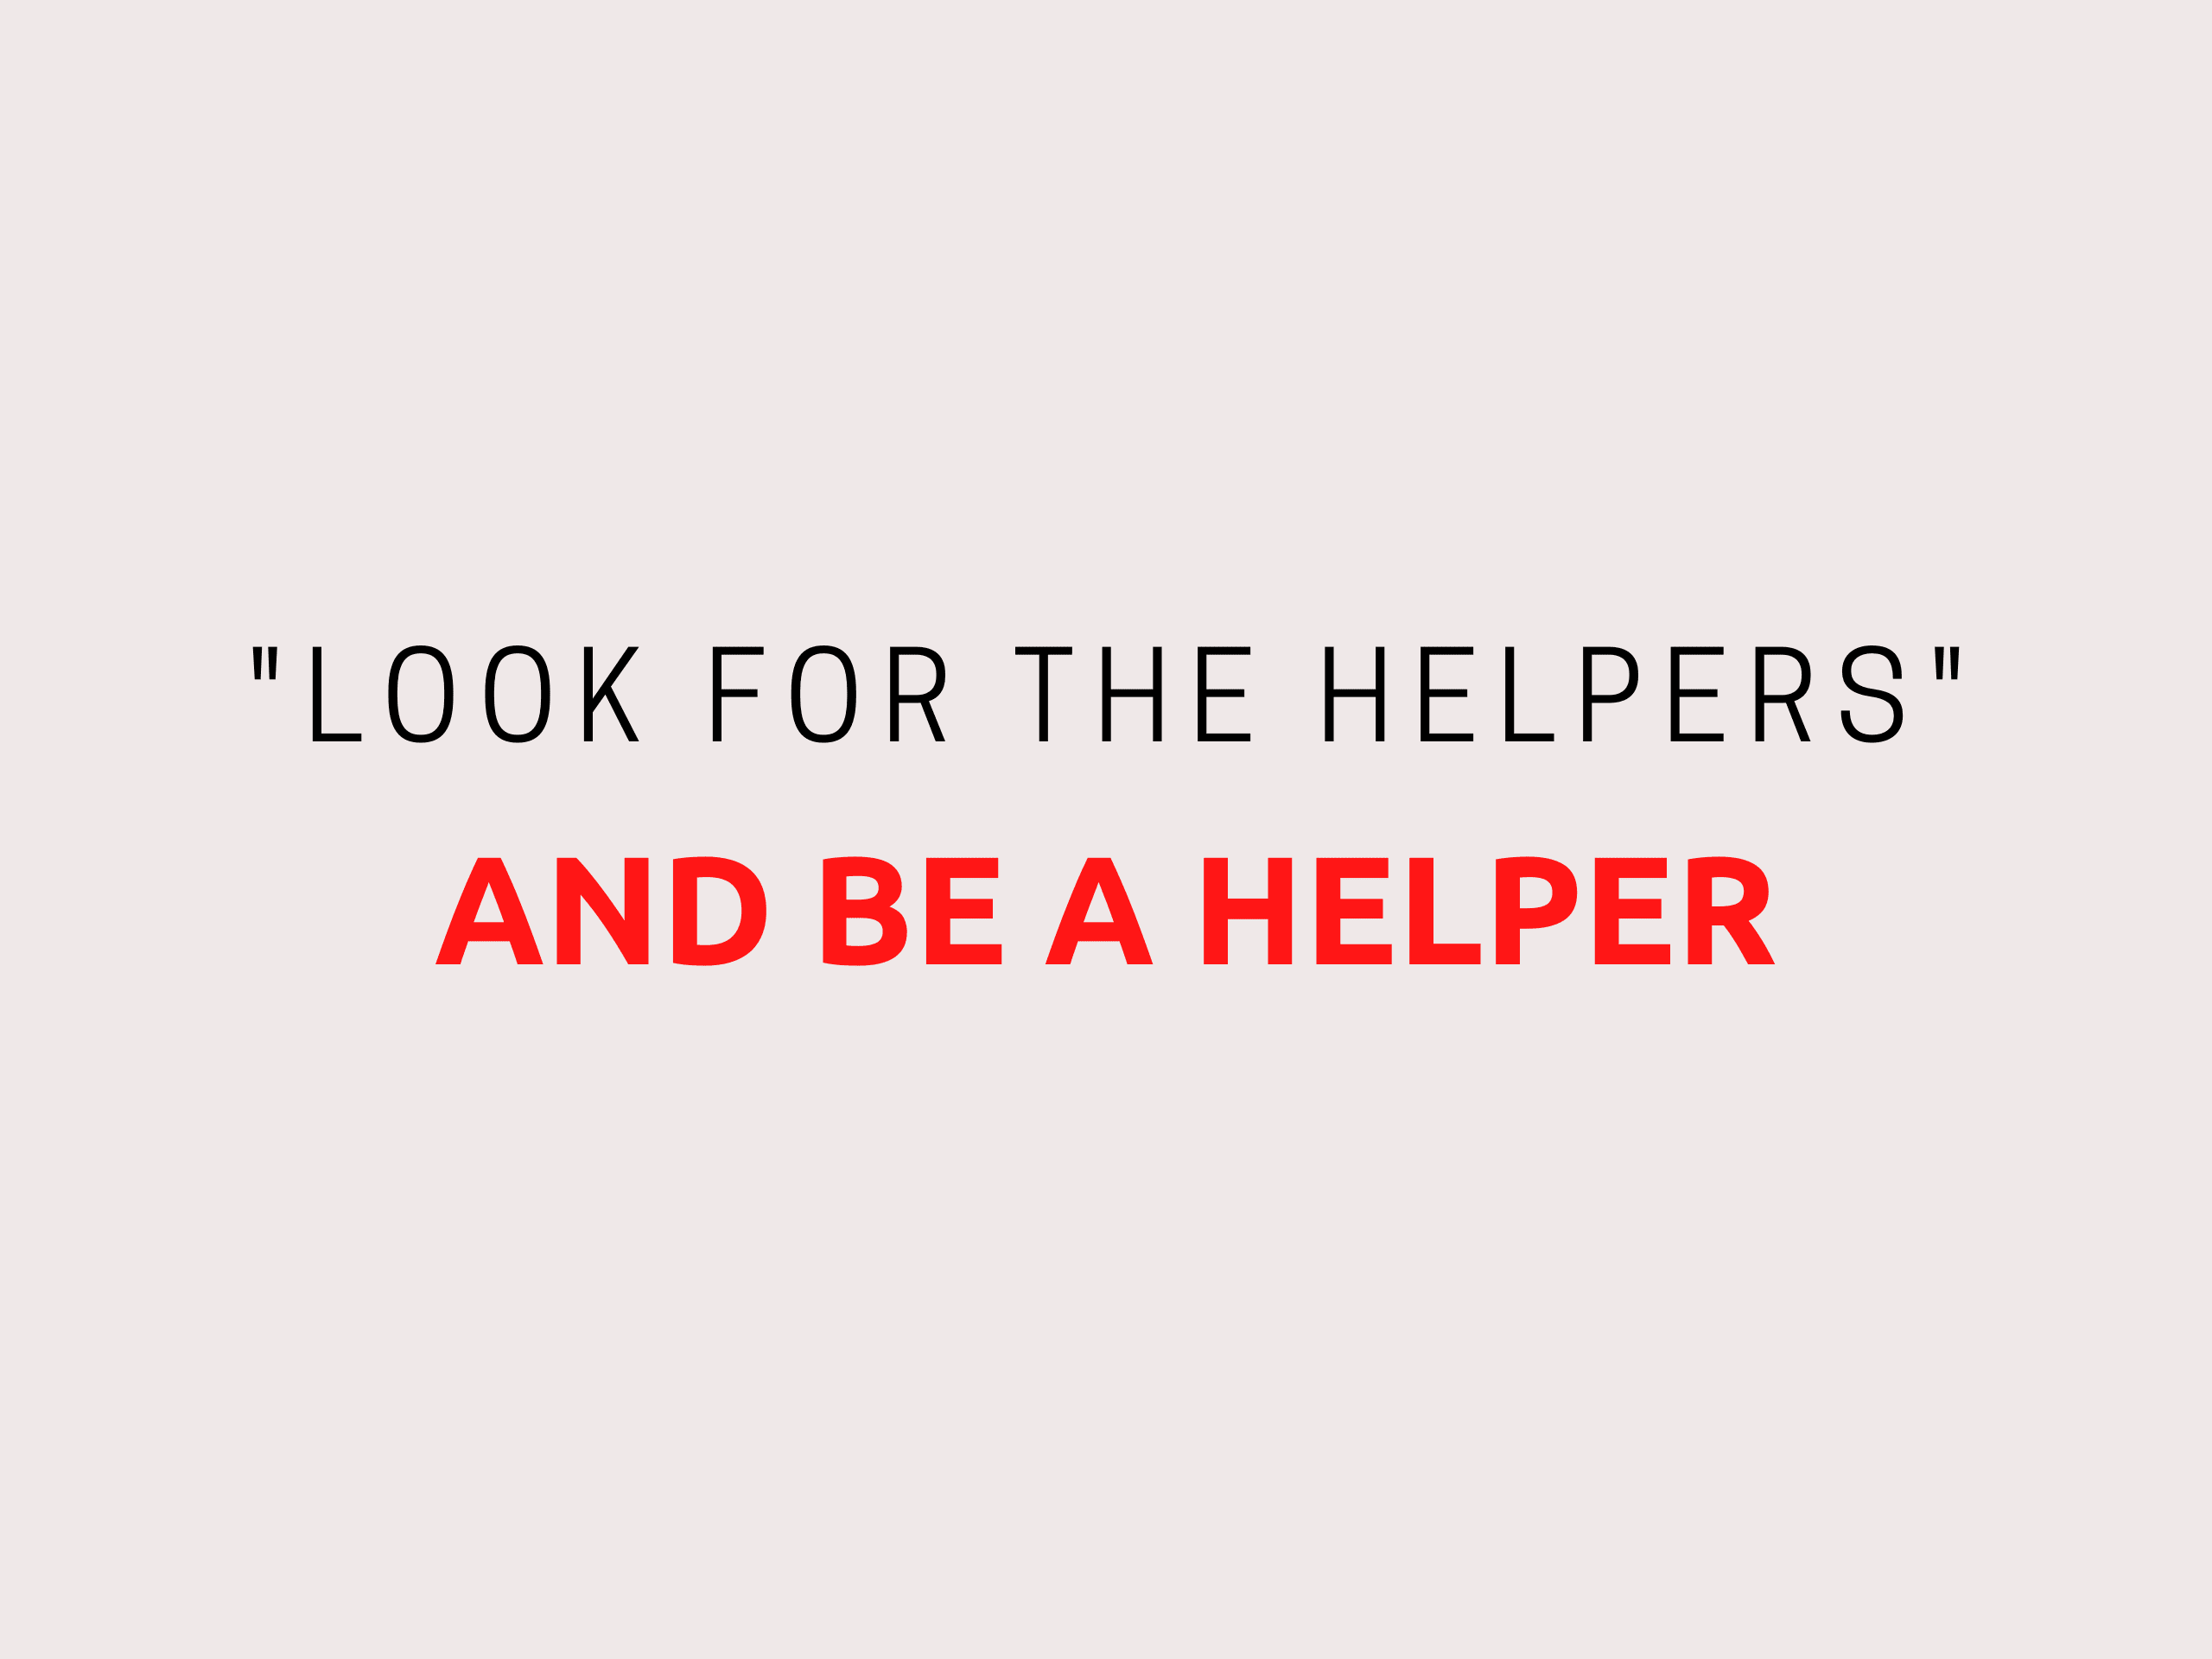 look for the helpers and be a helper